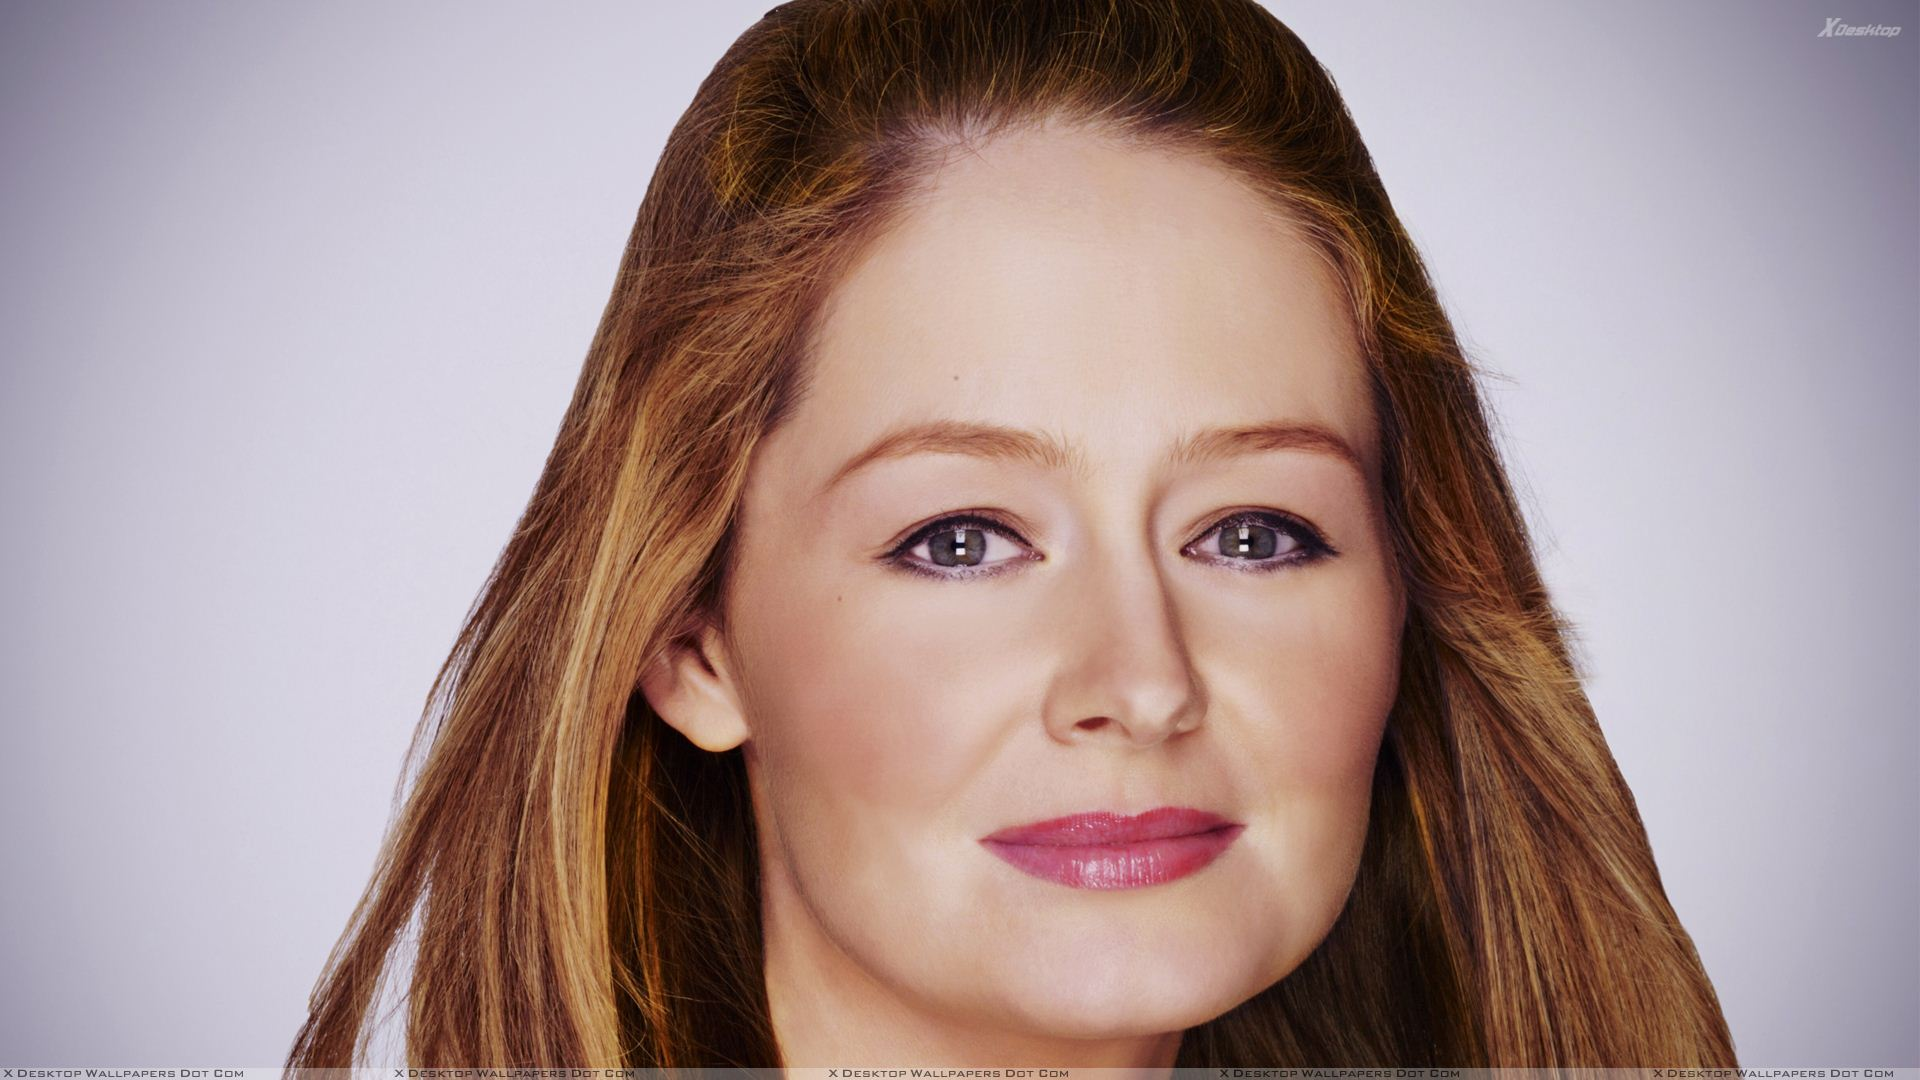 miranda otto wallpapermiranda otto lord of the rings, miranda otto daughter, miranda otto wiki, miranda otto instagram, miranda otto 2016, miranda otto westworld, miranda otto wallpaper, miranda otto films, miranda otto facebook, miranda otto eowyn interview, miranda otto, miranda otto imdb, miranda otto homeland, miranda otto 2015, miranda otto and peter o'brien, miranda otto wikipedia, miranda otto interview